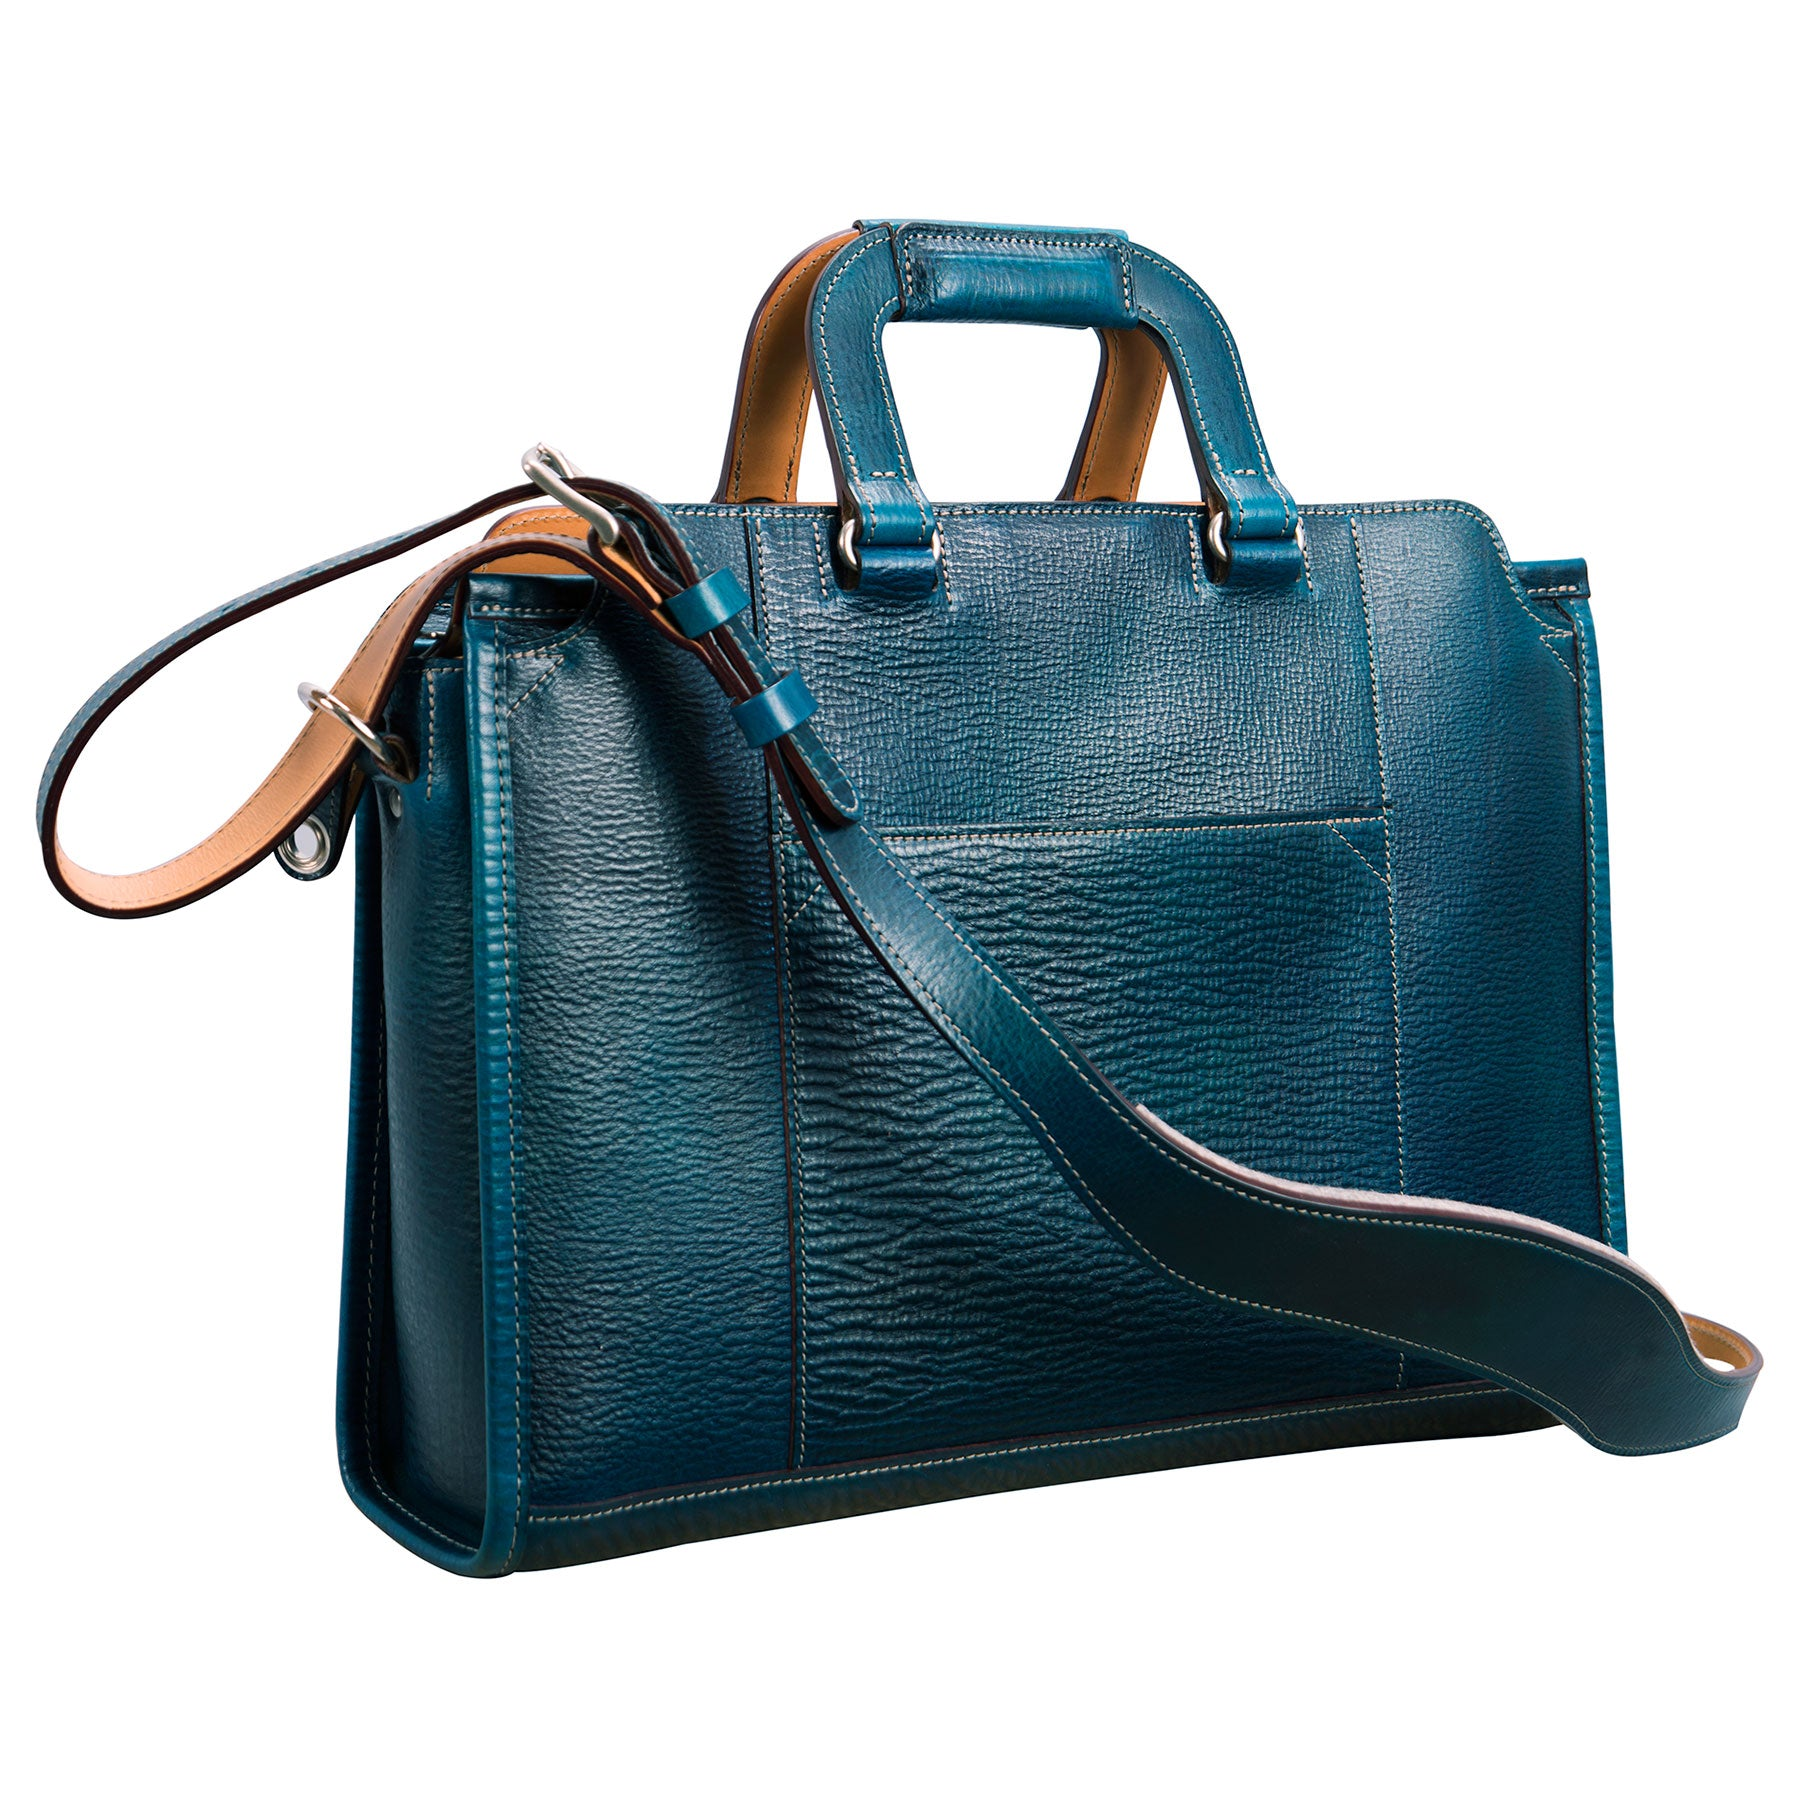 Day Tote: Hand-Grained, Hand-Colored Leather